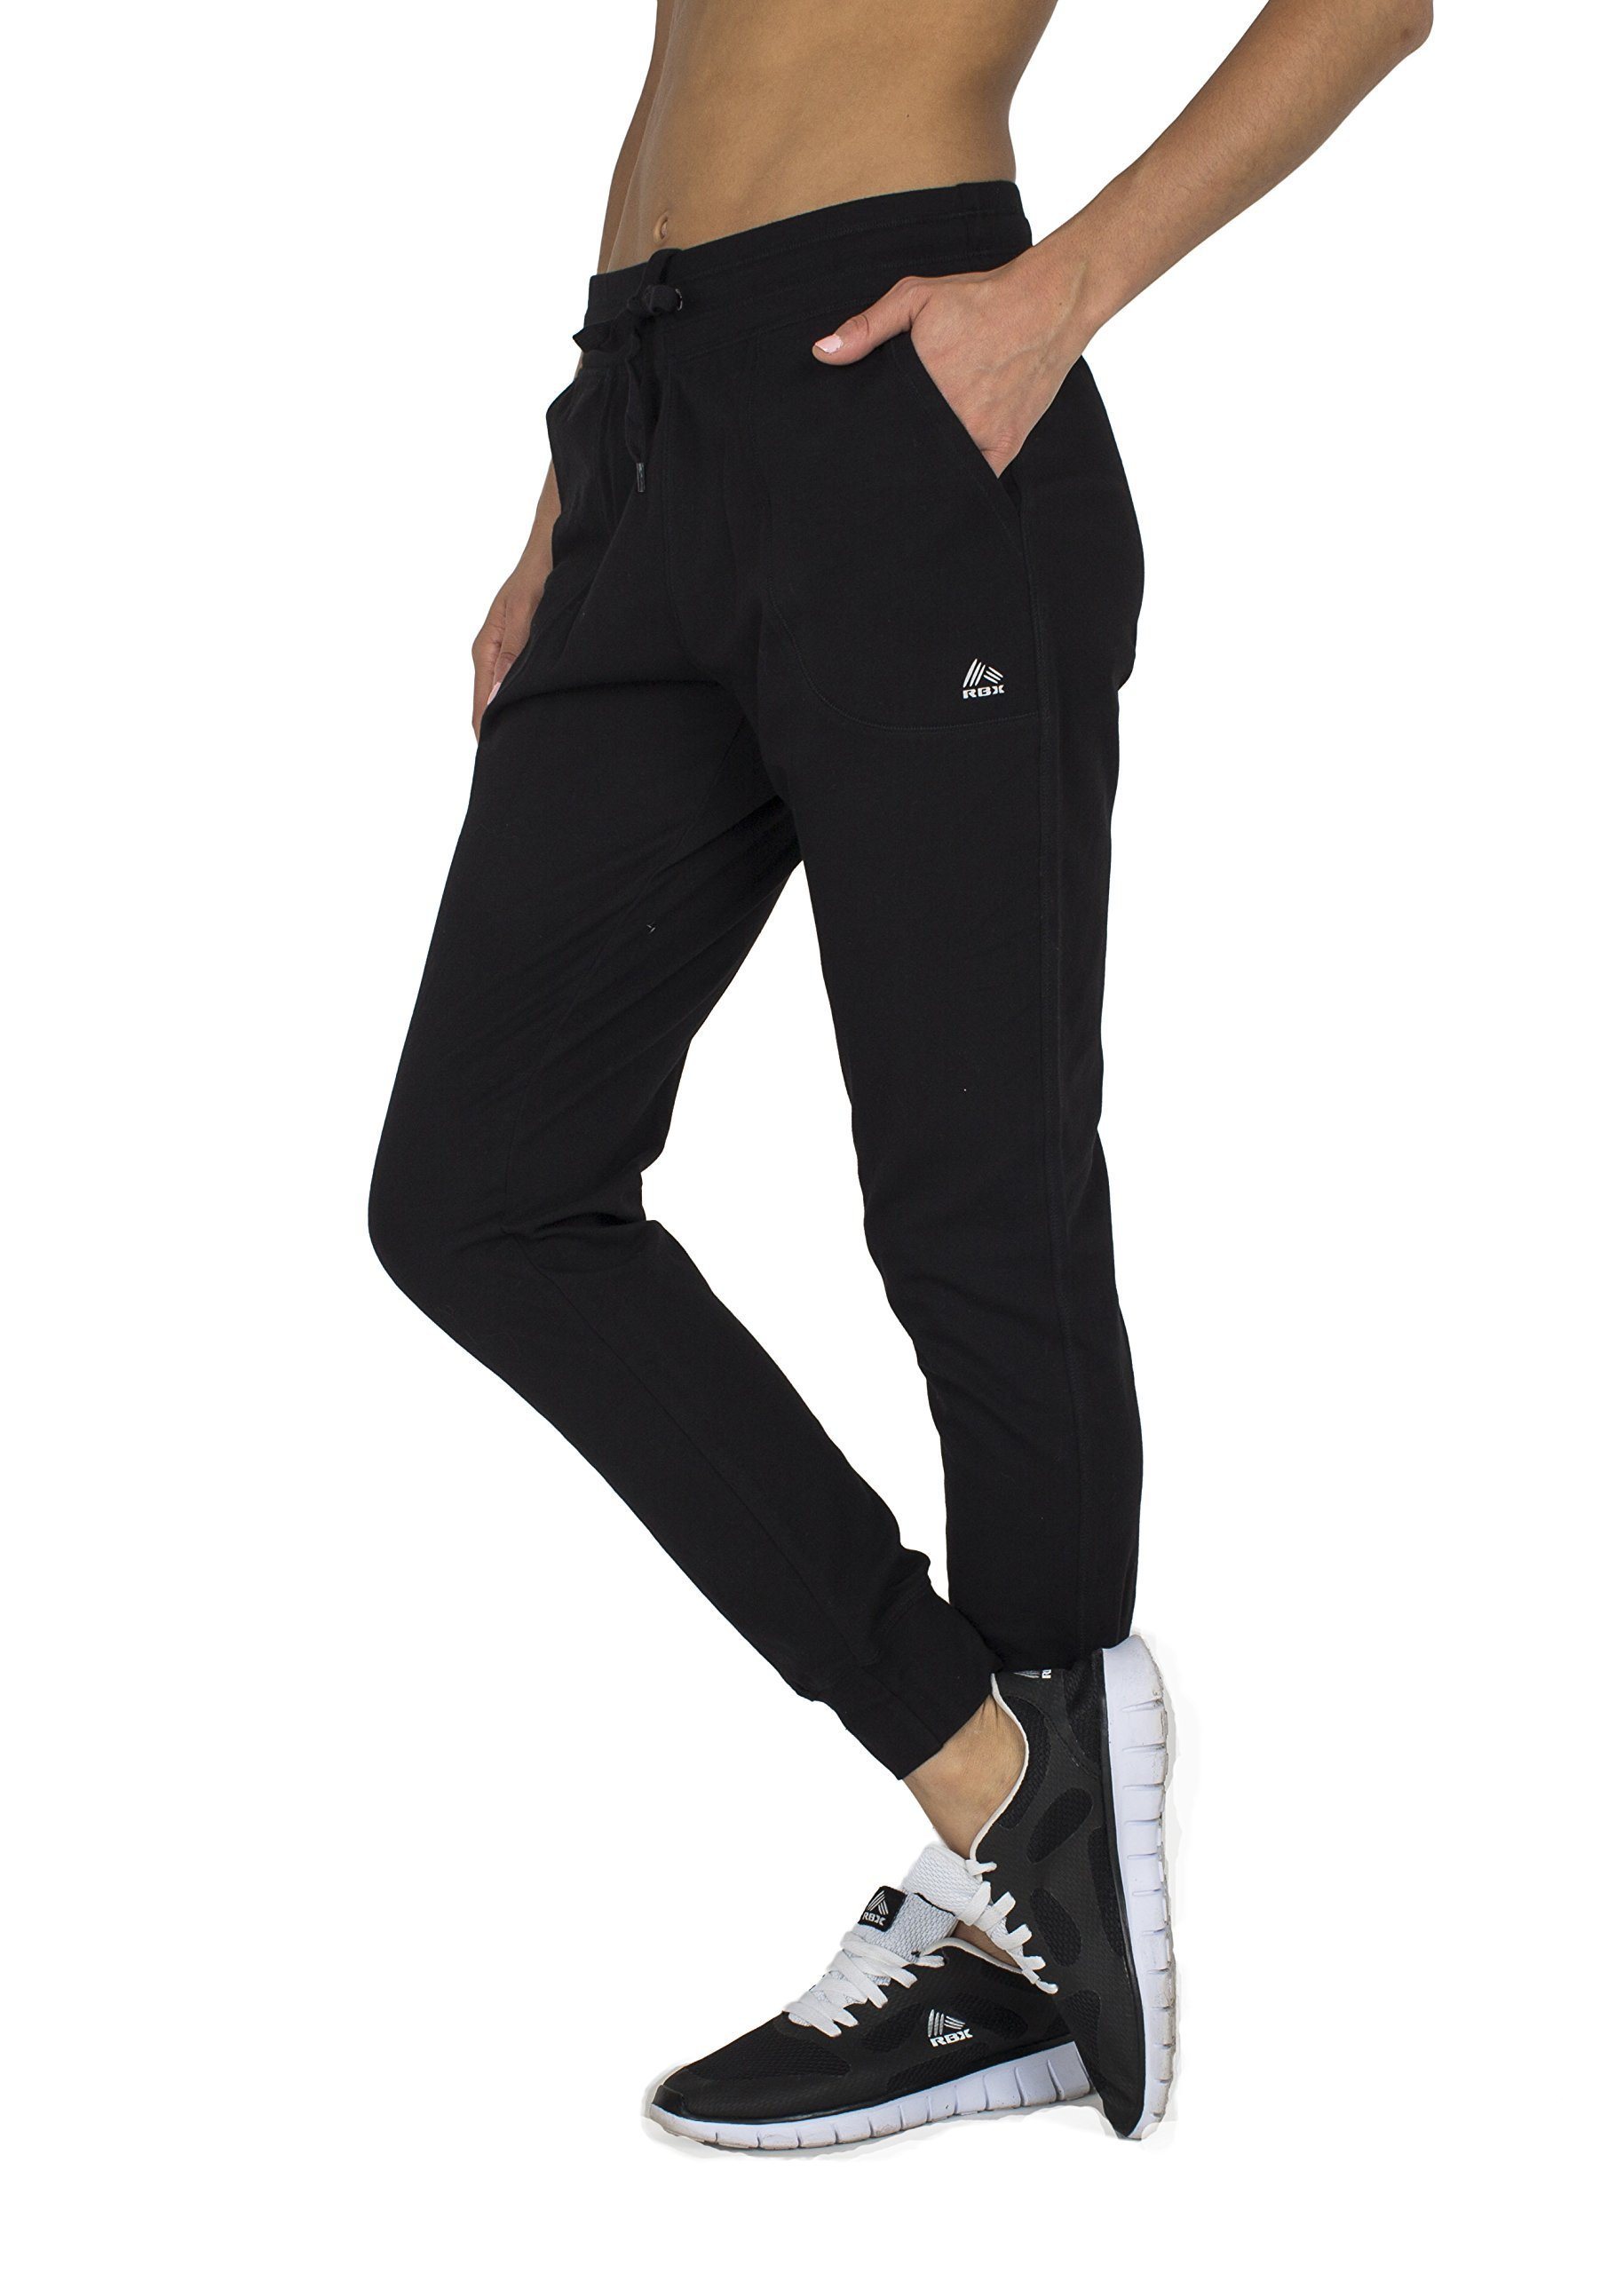 RBX Active womens Full Length Cotton Jogger,Black,Medium by RBX